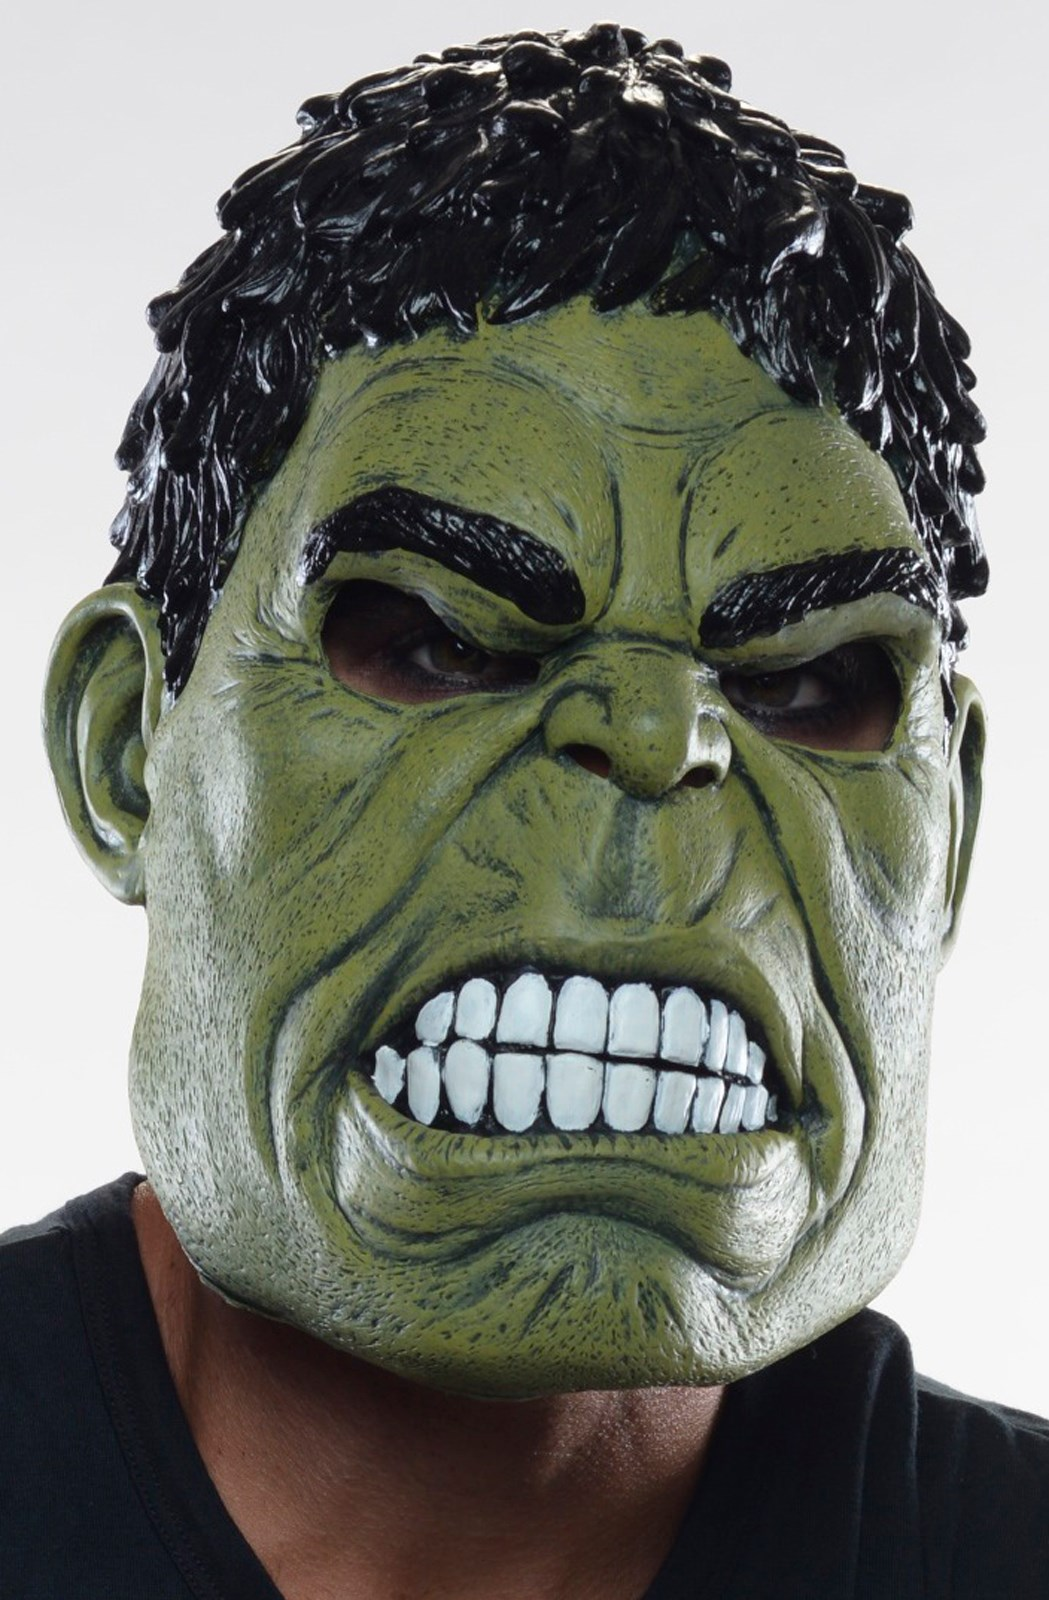 The Incredible Hulk Costumes | BuyCostumes.com